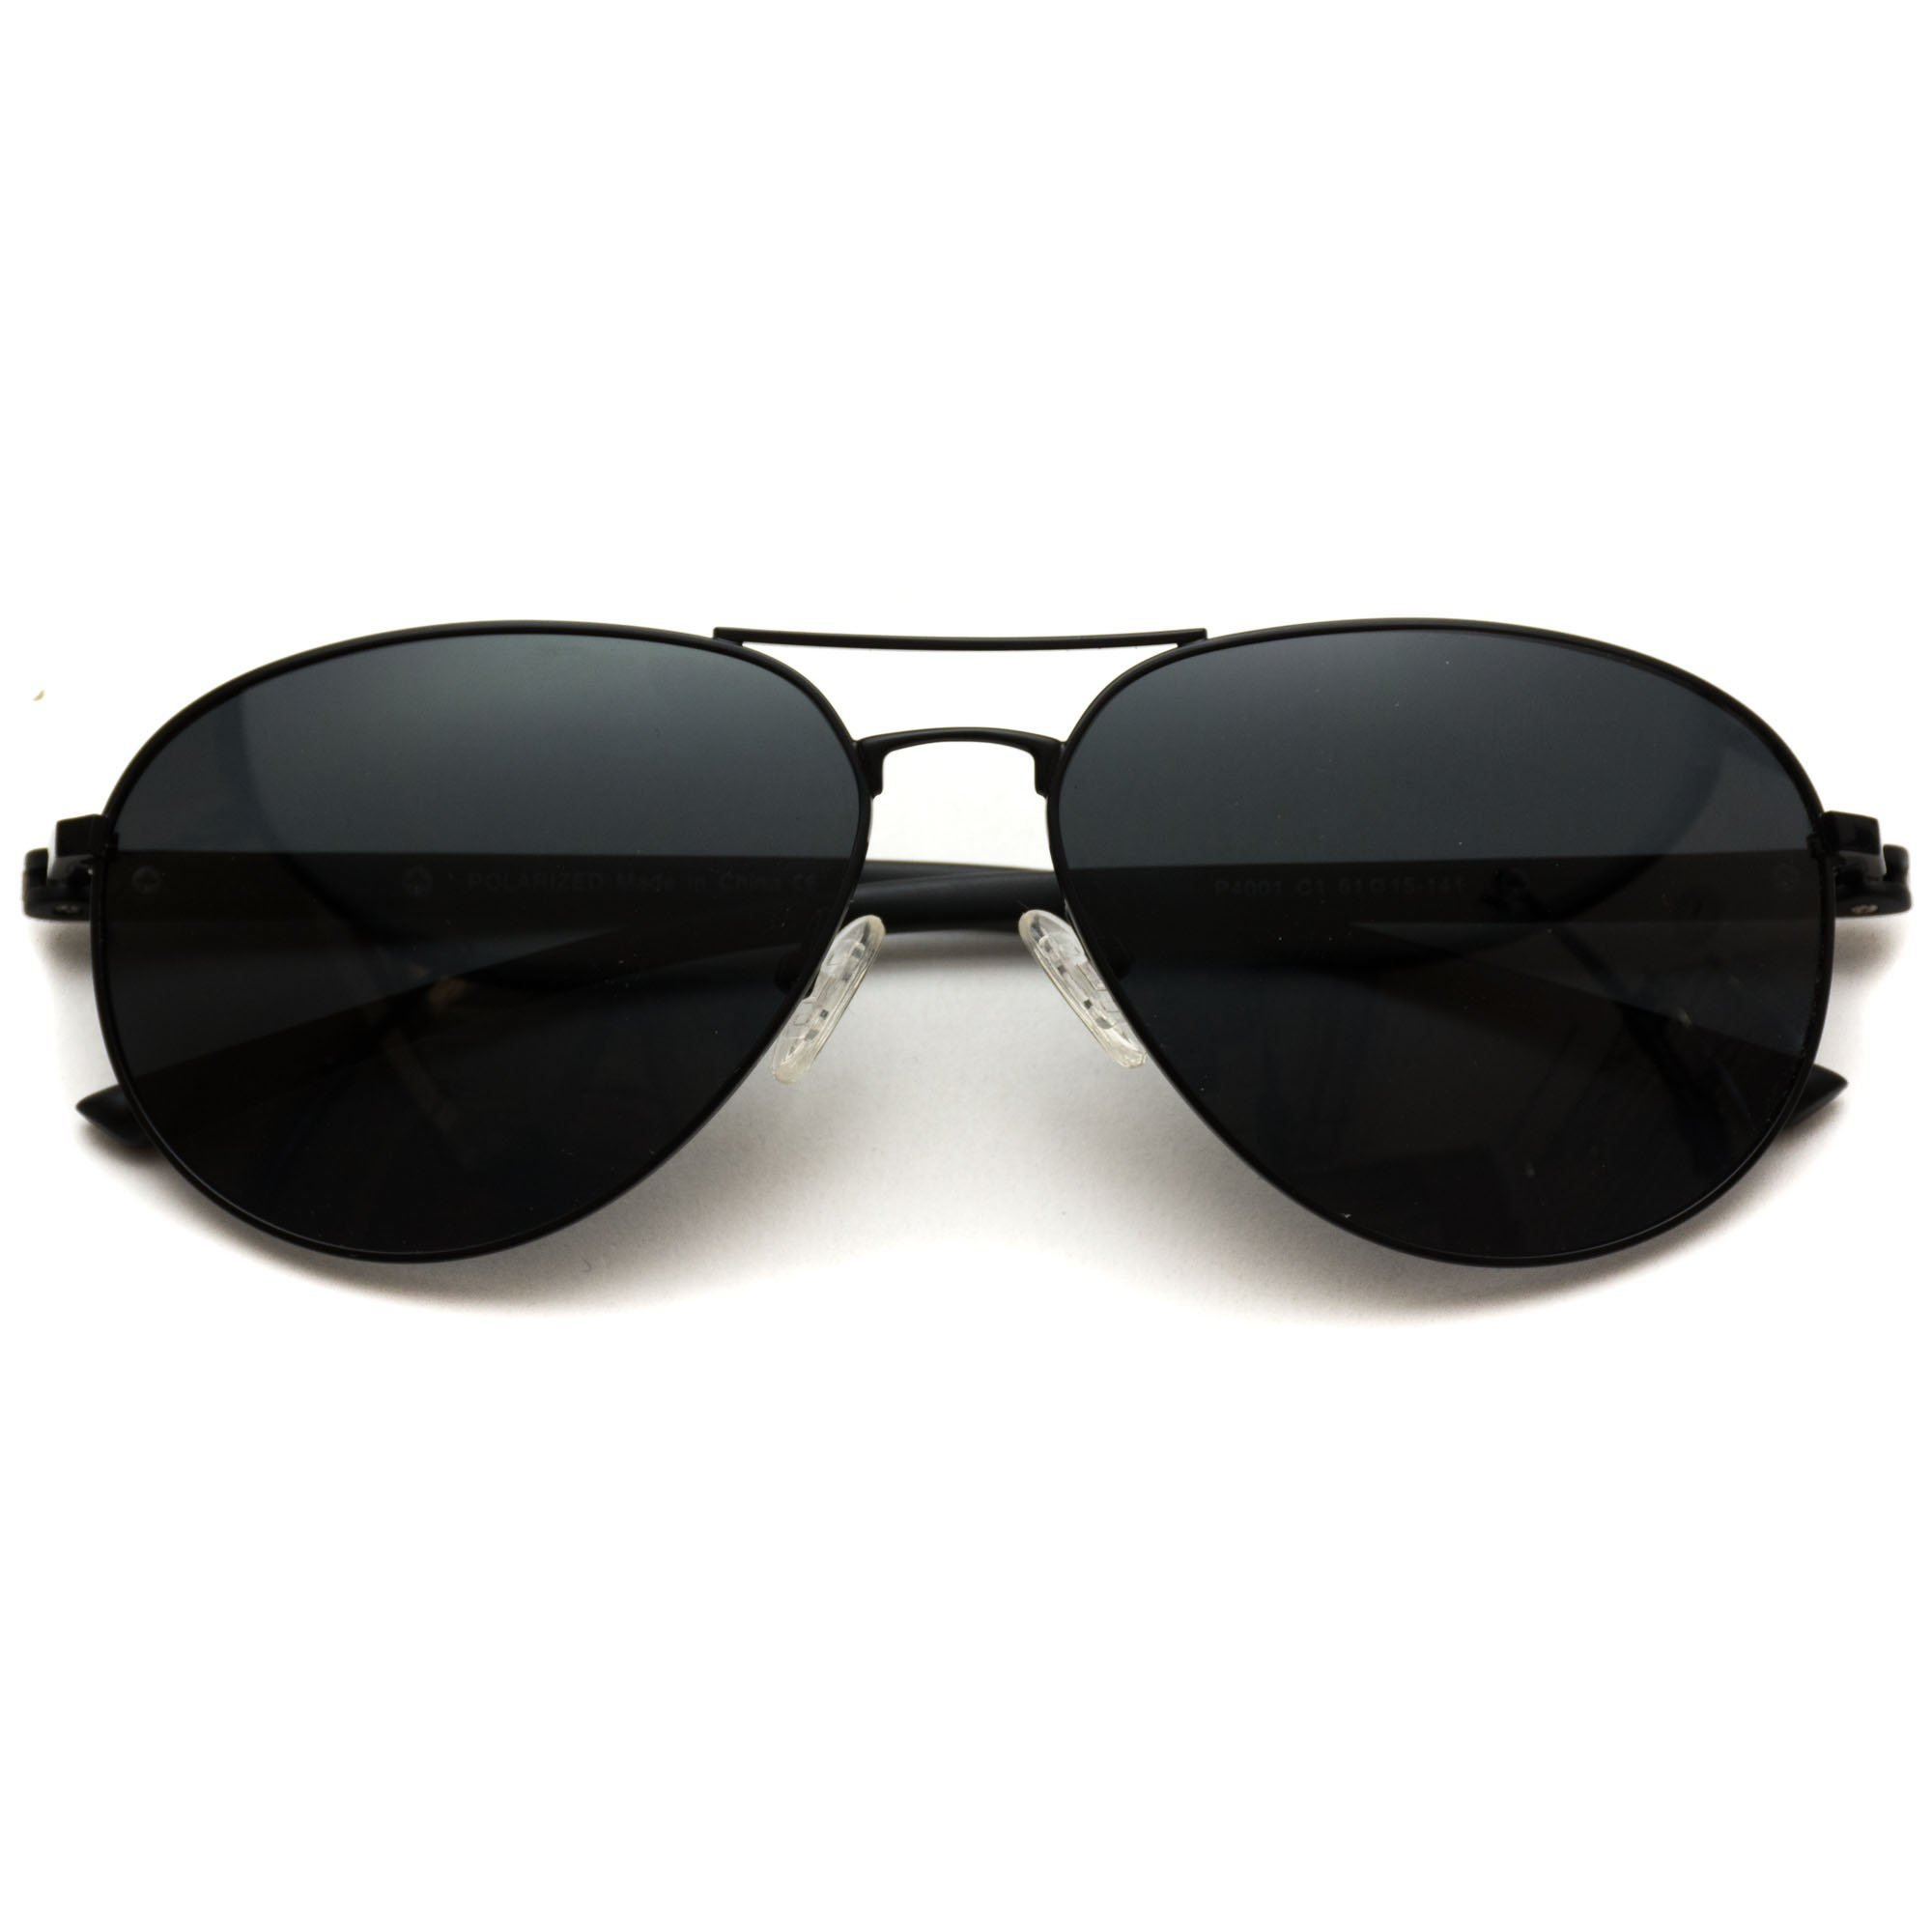 WearMe Pro - Classic Black Frame Black Lens Metal Frame Aviator Sunglasses by WearMe Pro